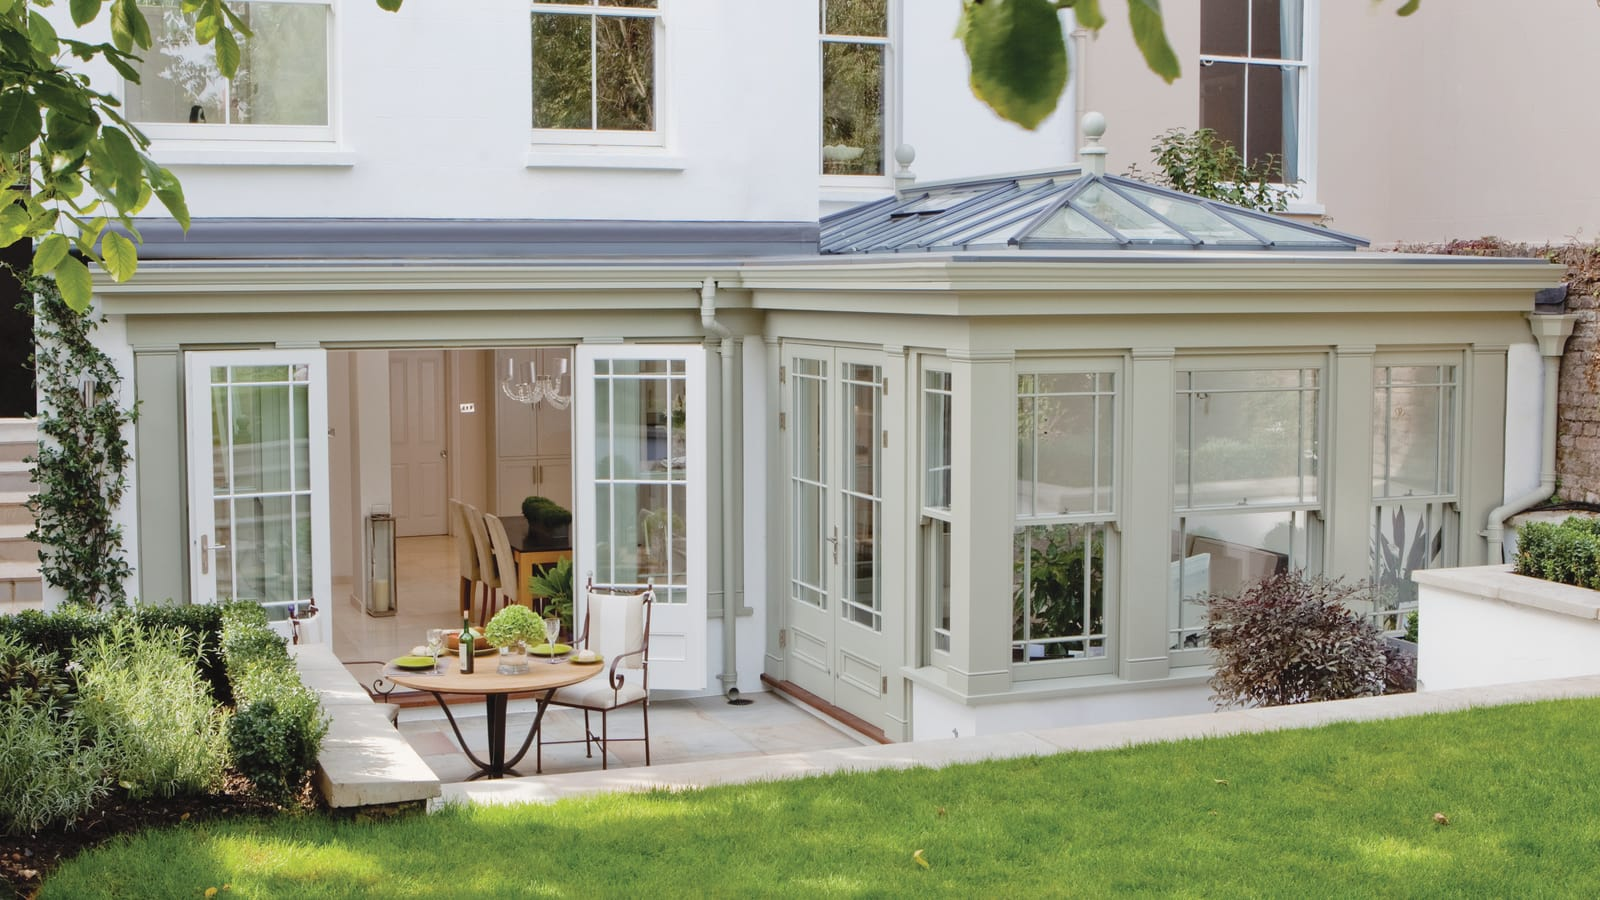 An orangery design featuring sliding sash windows and french doors